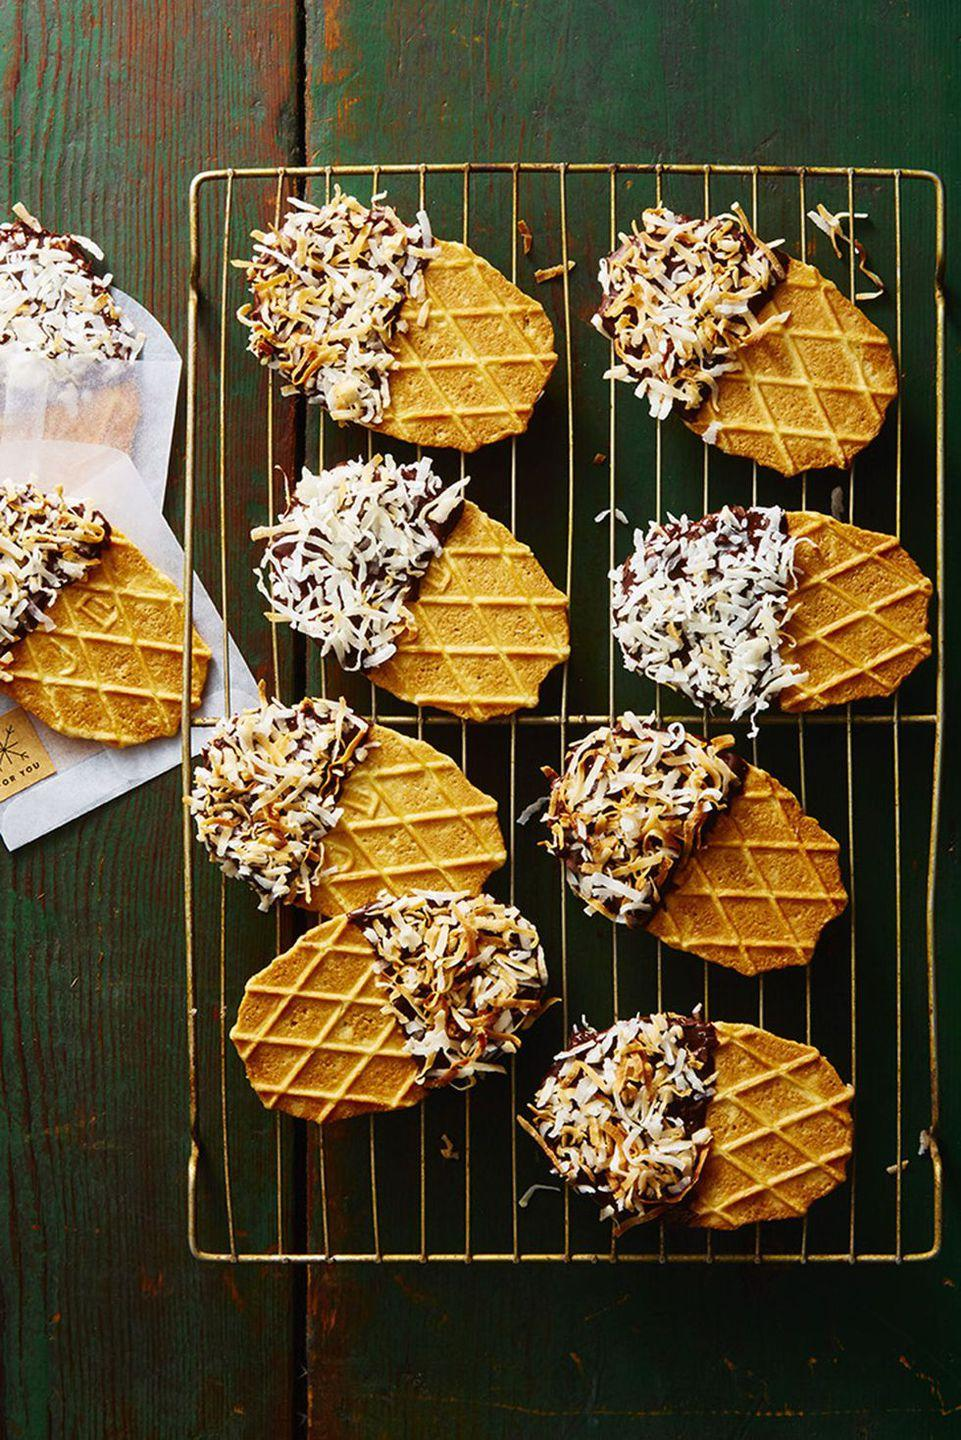 """<p>Dip store-bought crackers into melted, decadent dark chocolate to create a quick,<a href=""""https://www.womansday.com/life/g971/gifts-under-20-dollars/"""" rel=""""nofollow noopener"""" target=""""_blank"""" data-ylk=""""slk:last-minute holiday gift"""" class=""""link rapid-noclick-resp""""> last-minute holiday gift</a>. </p><p><strong>Get the recipe at <a href=""""https://www.goodhousekeeping.com/food-recipes/dessert/a46922/no-bake-waffle-dippers-recipe/"""" rel=""""nofollow noopener"""" target=""""_blank"""" data-ylk=""""slk:Good Housekeeping."""" class=""""link rapid-noclick-resp"""">Good Housekeeping. </a></strong></p>"""